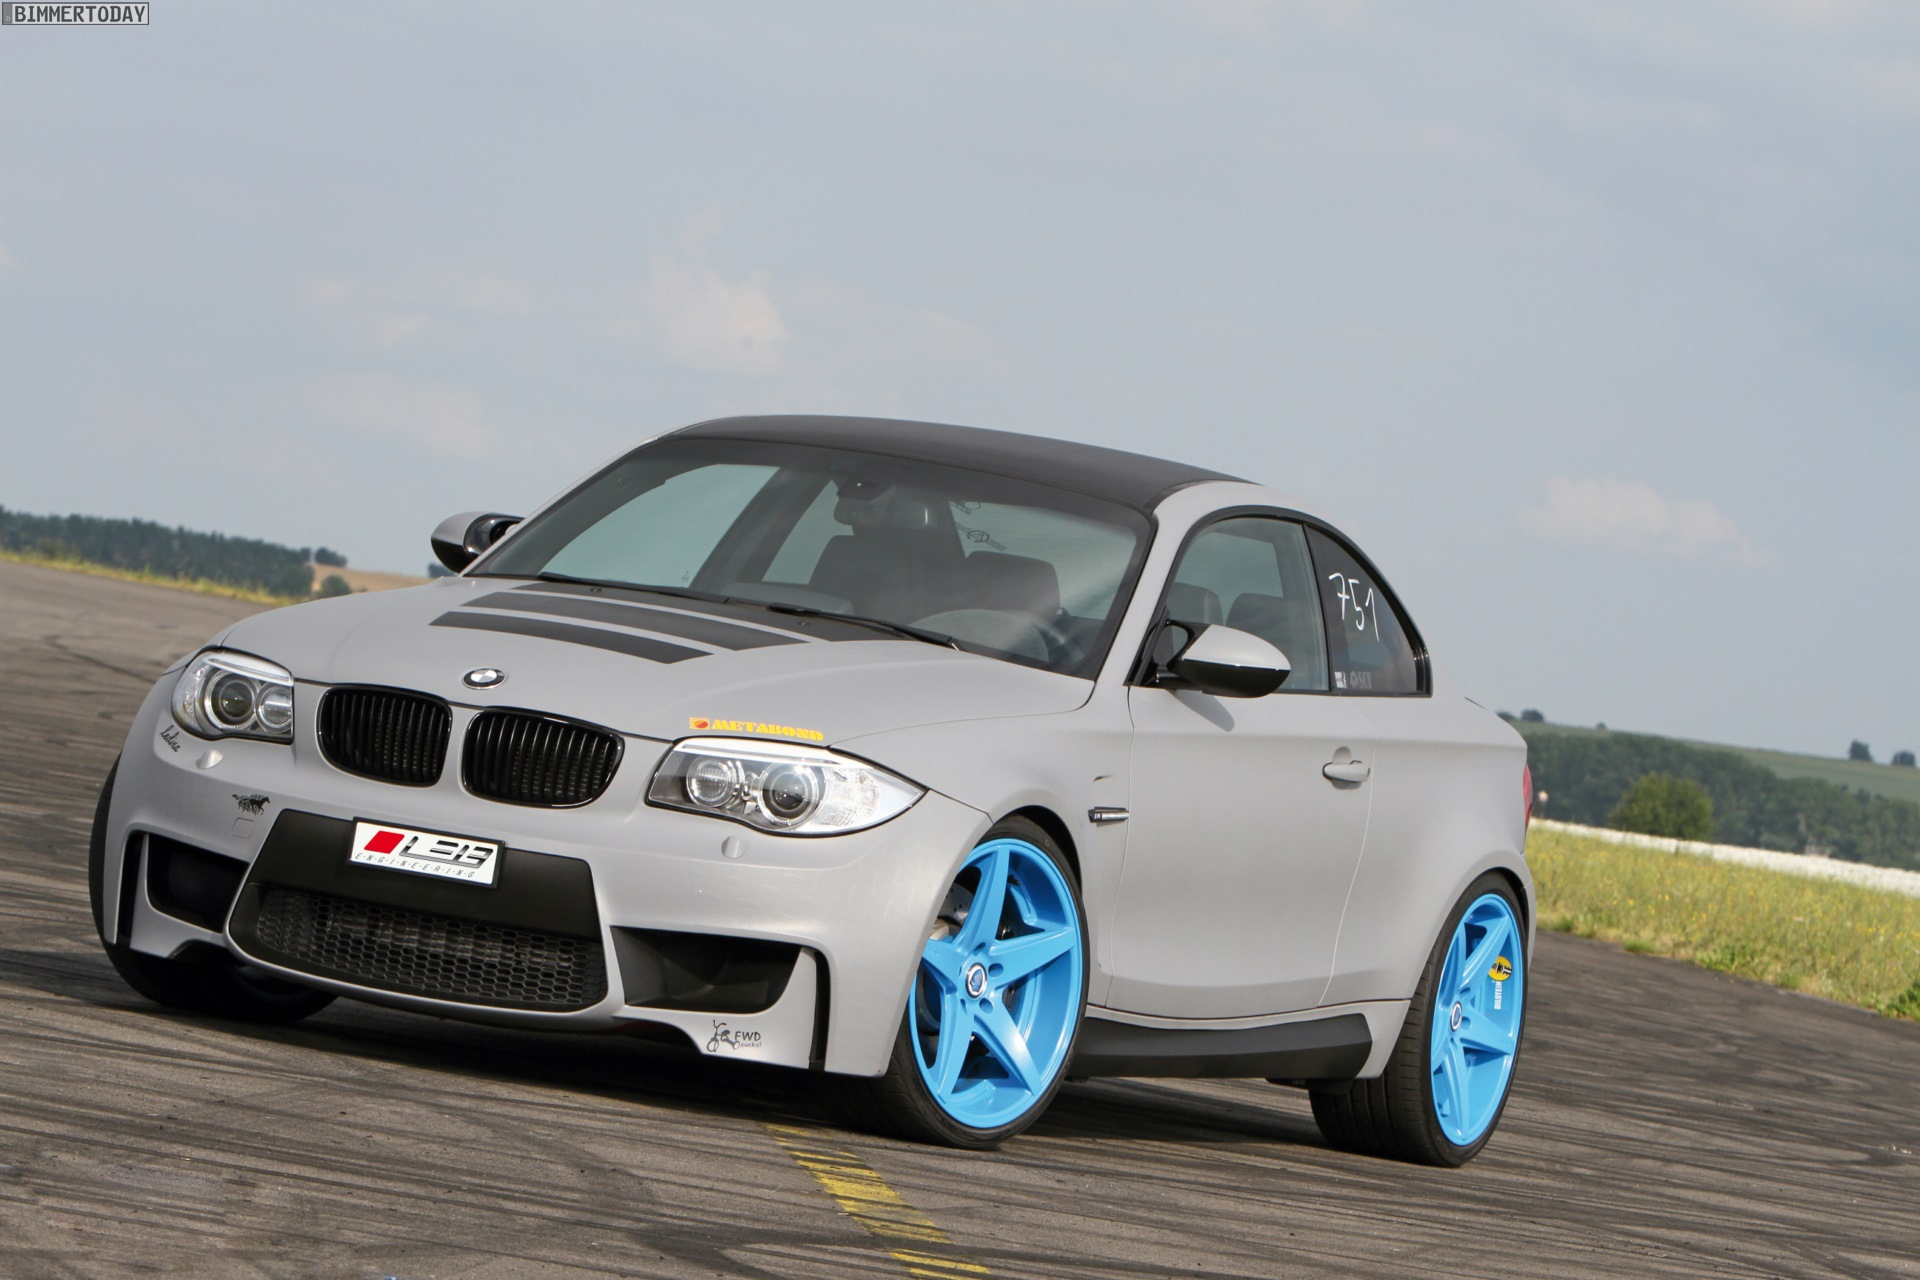 bmw 1er coupe (e82) 2015 pictures #13